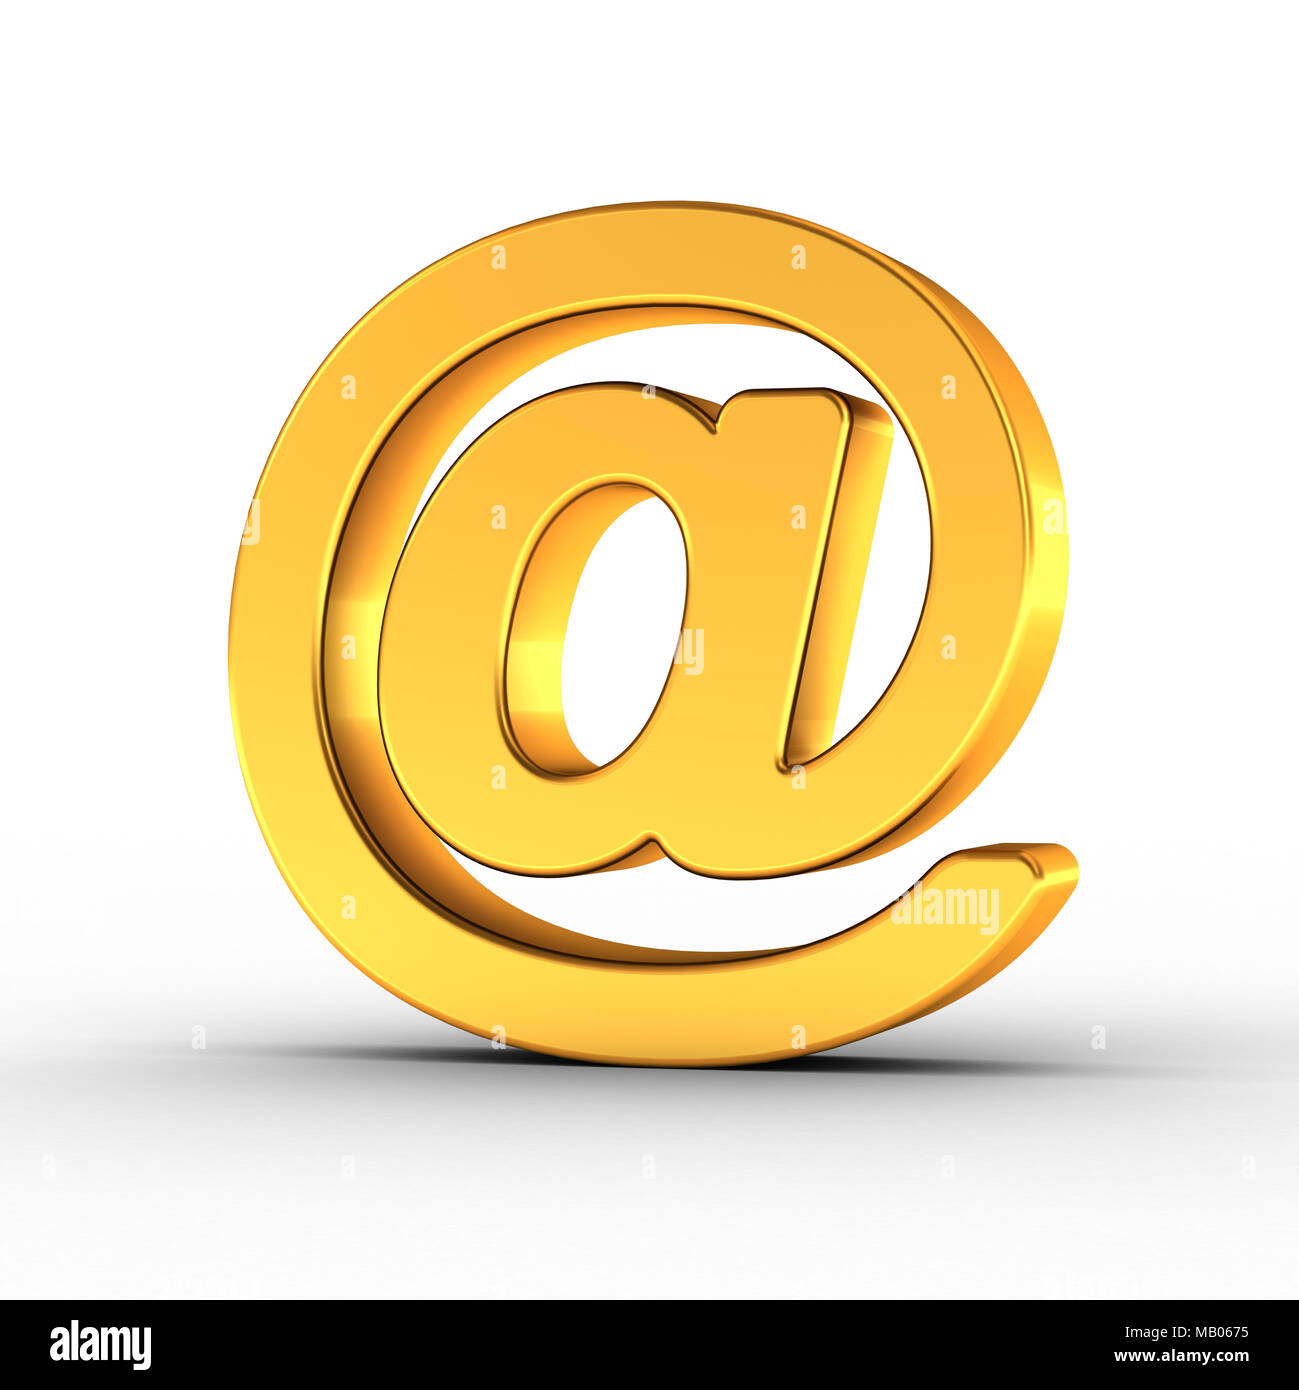 The Email symbol as a polished golden object over white background with clipping path for quick and accurate isolation. - Stock Image